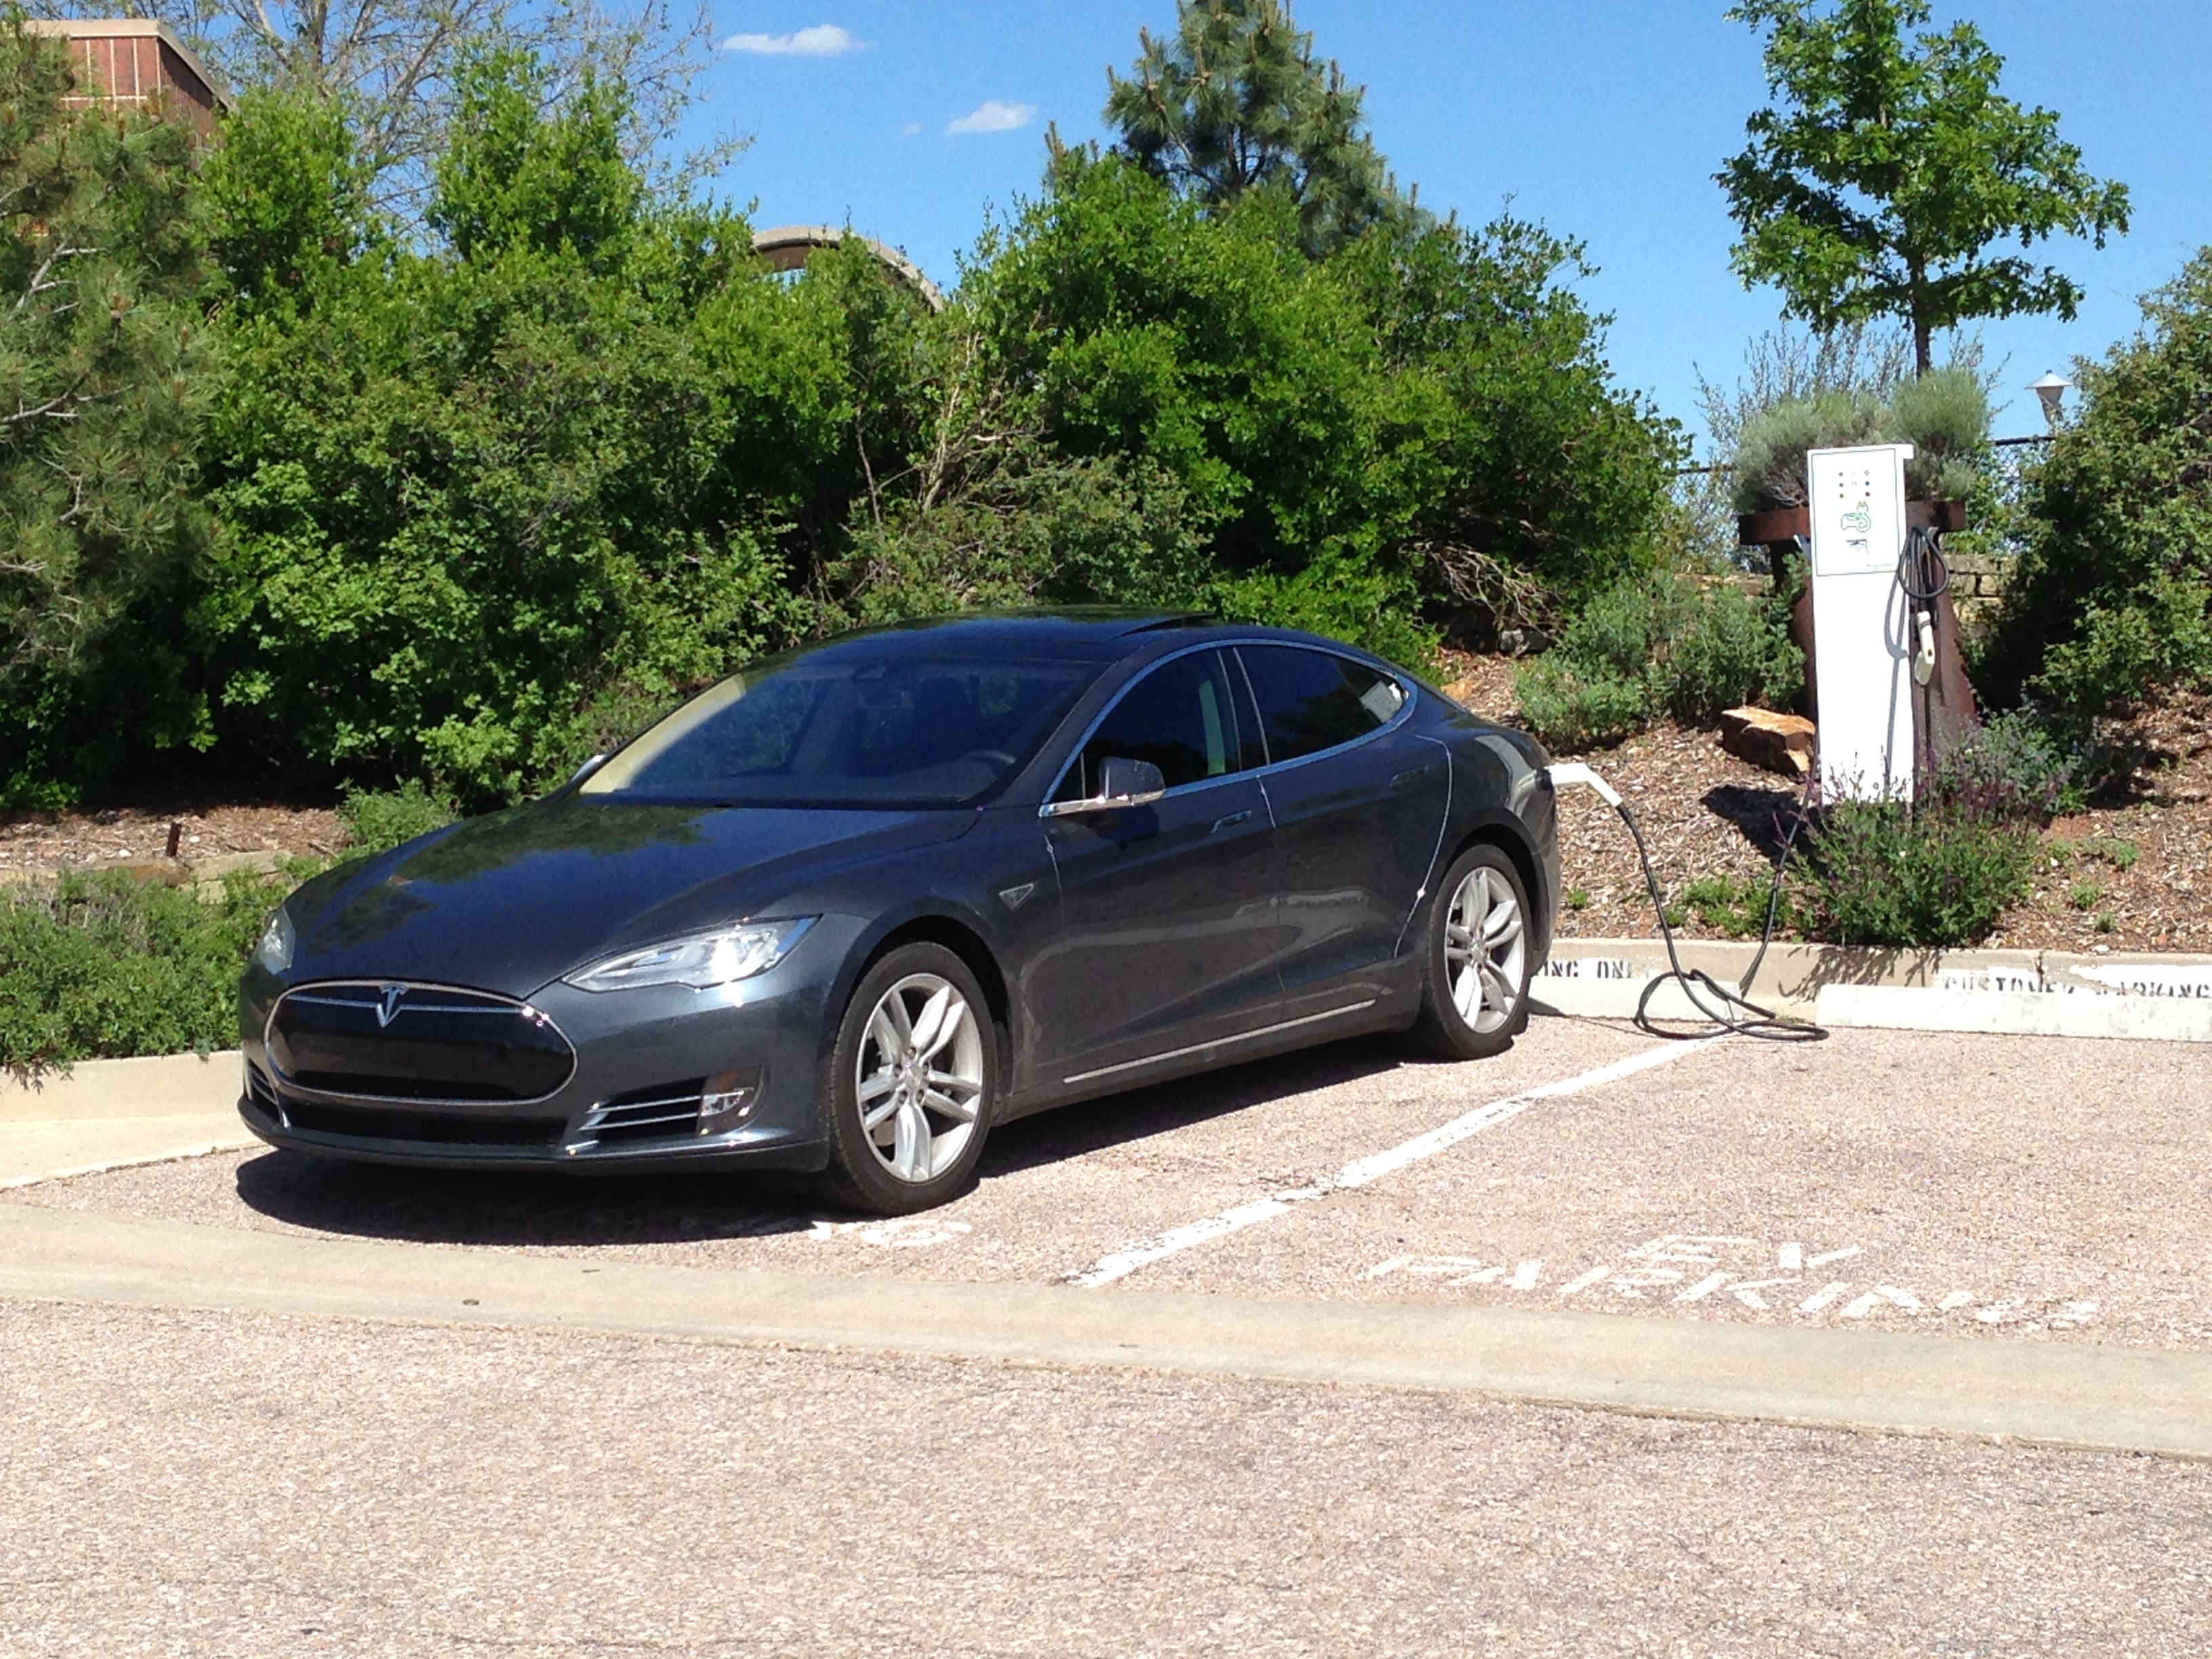 Tesla 2015-06-08 15.45.45 Colorado Springs Utility charger 3kWh.jpg